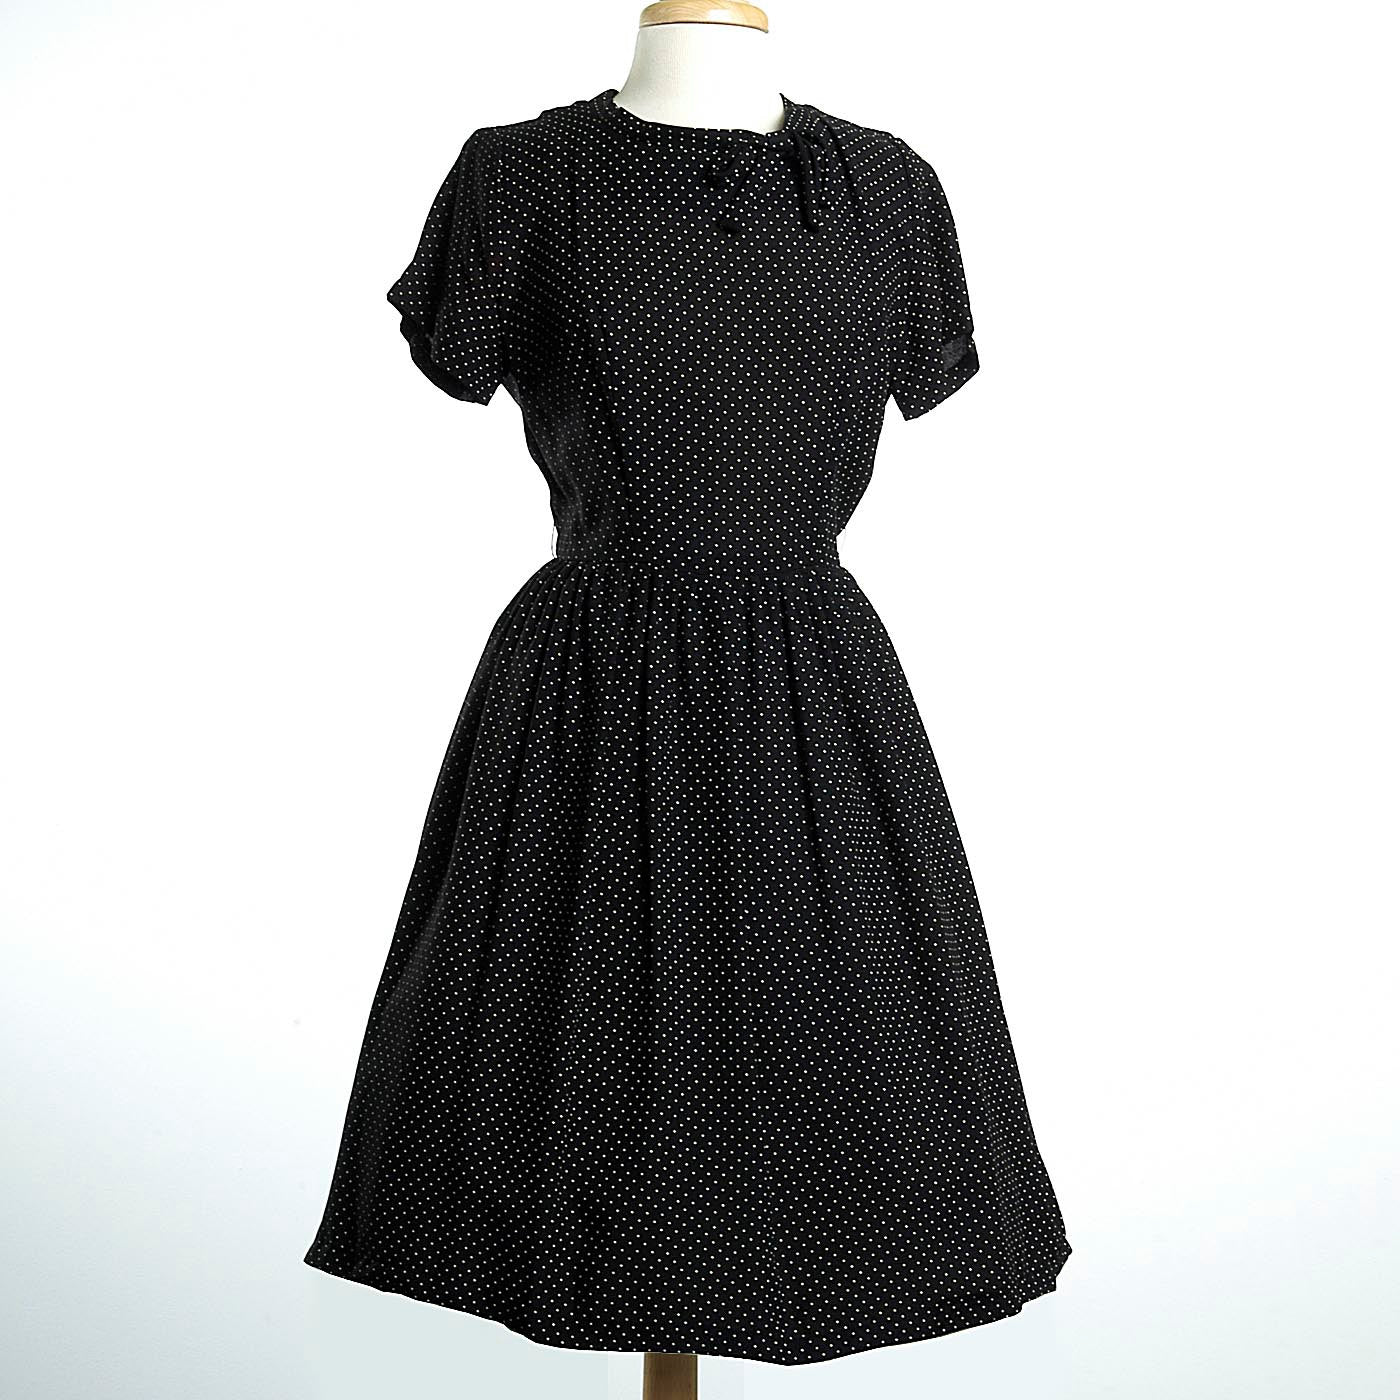 1950s Black Knit Dress with White Polka Dots